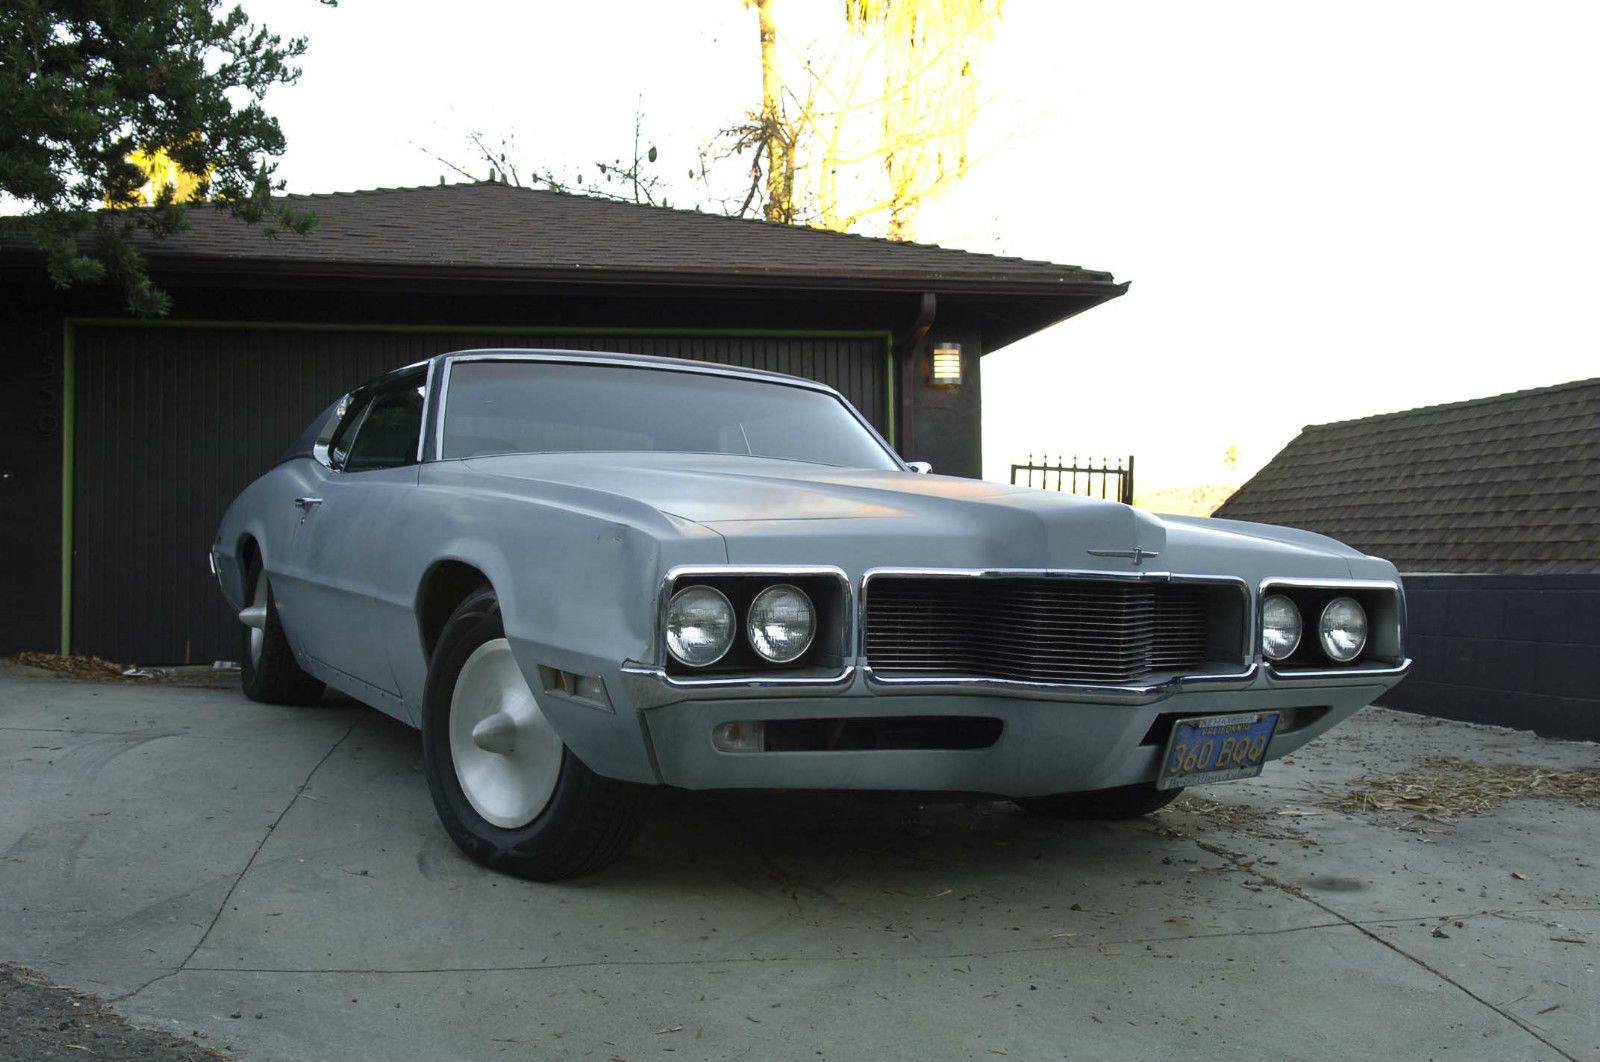 Classic With Landau Roof Car Pictures - Car Canyon